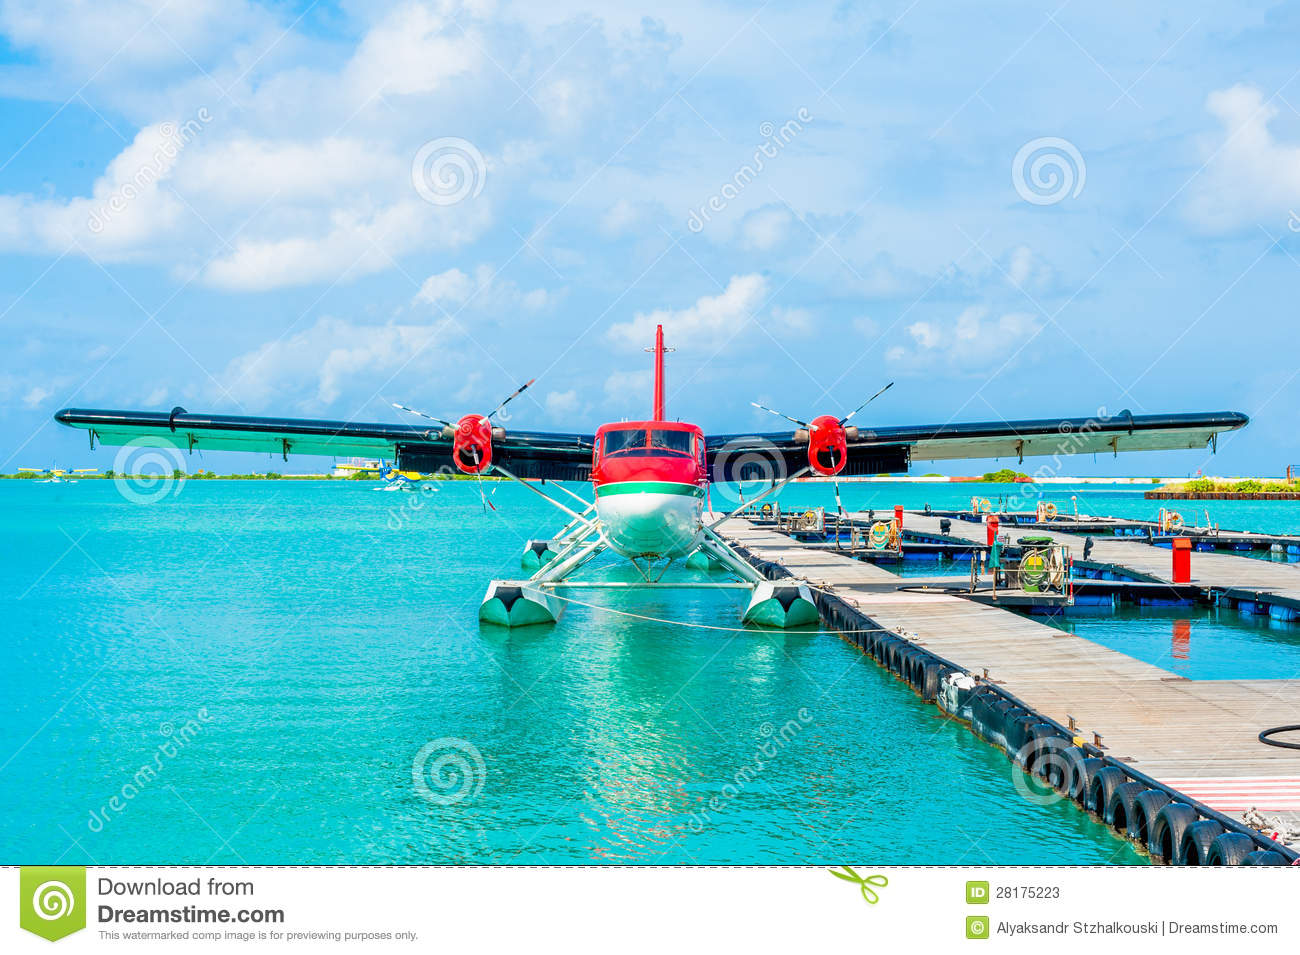 Aeroporto Male : Hydroplane at male airport maldives stock image image of glider